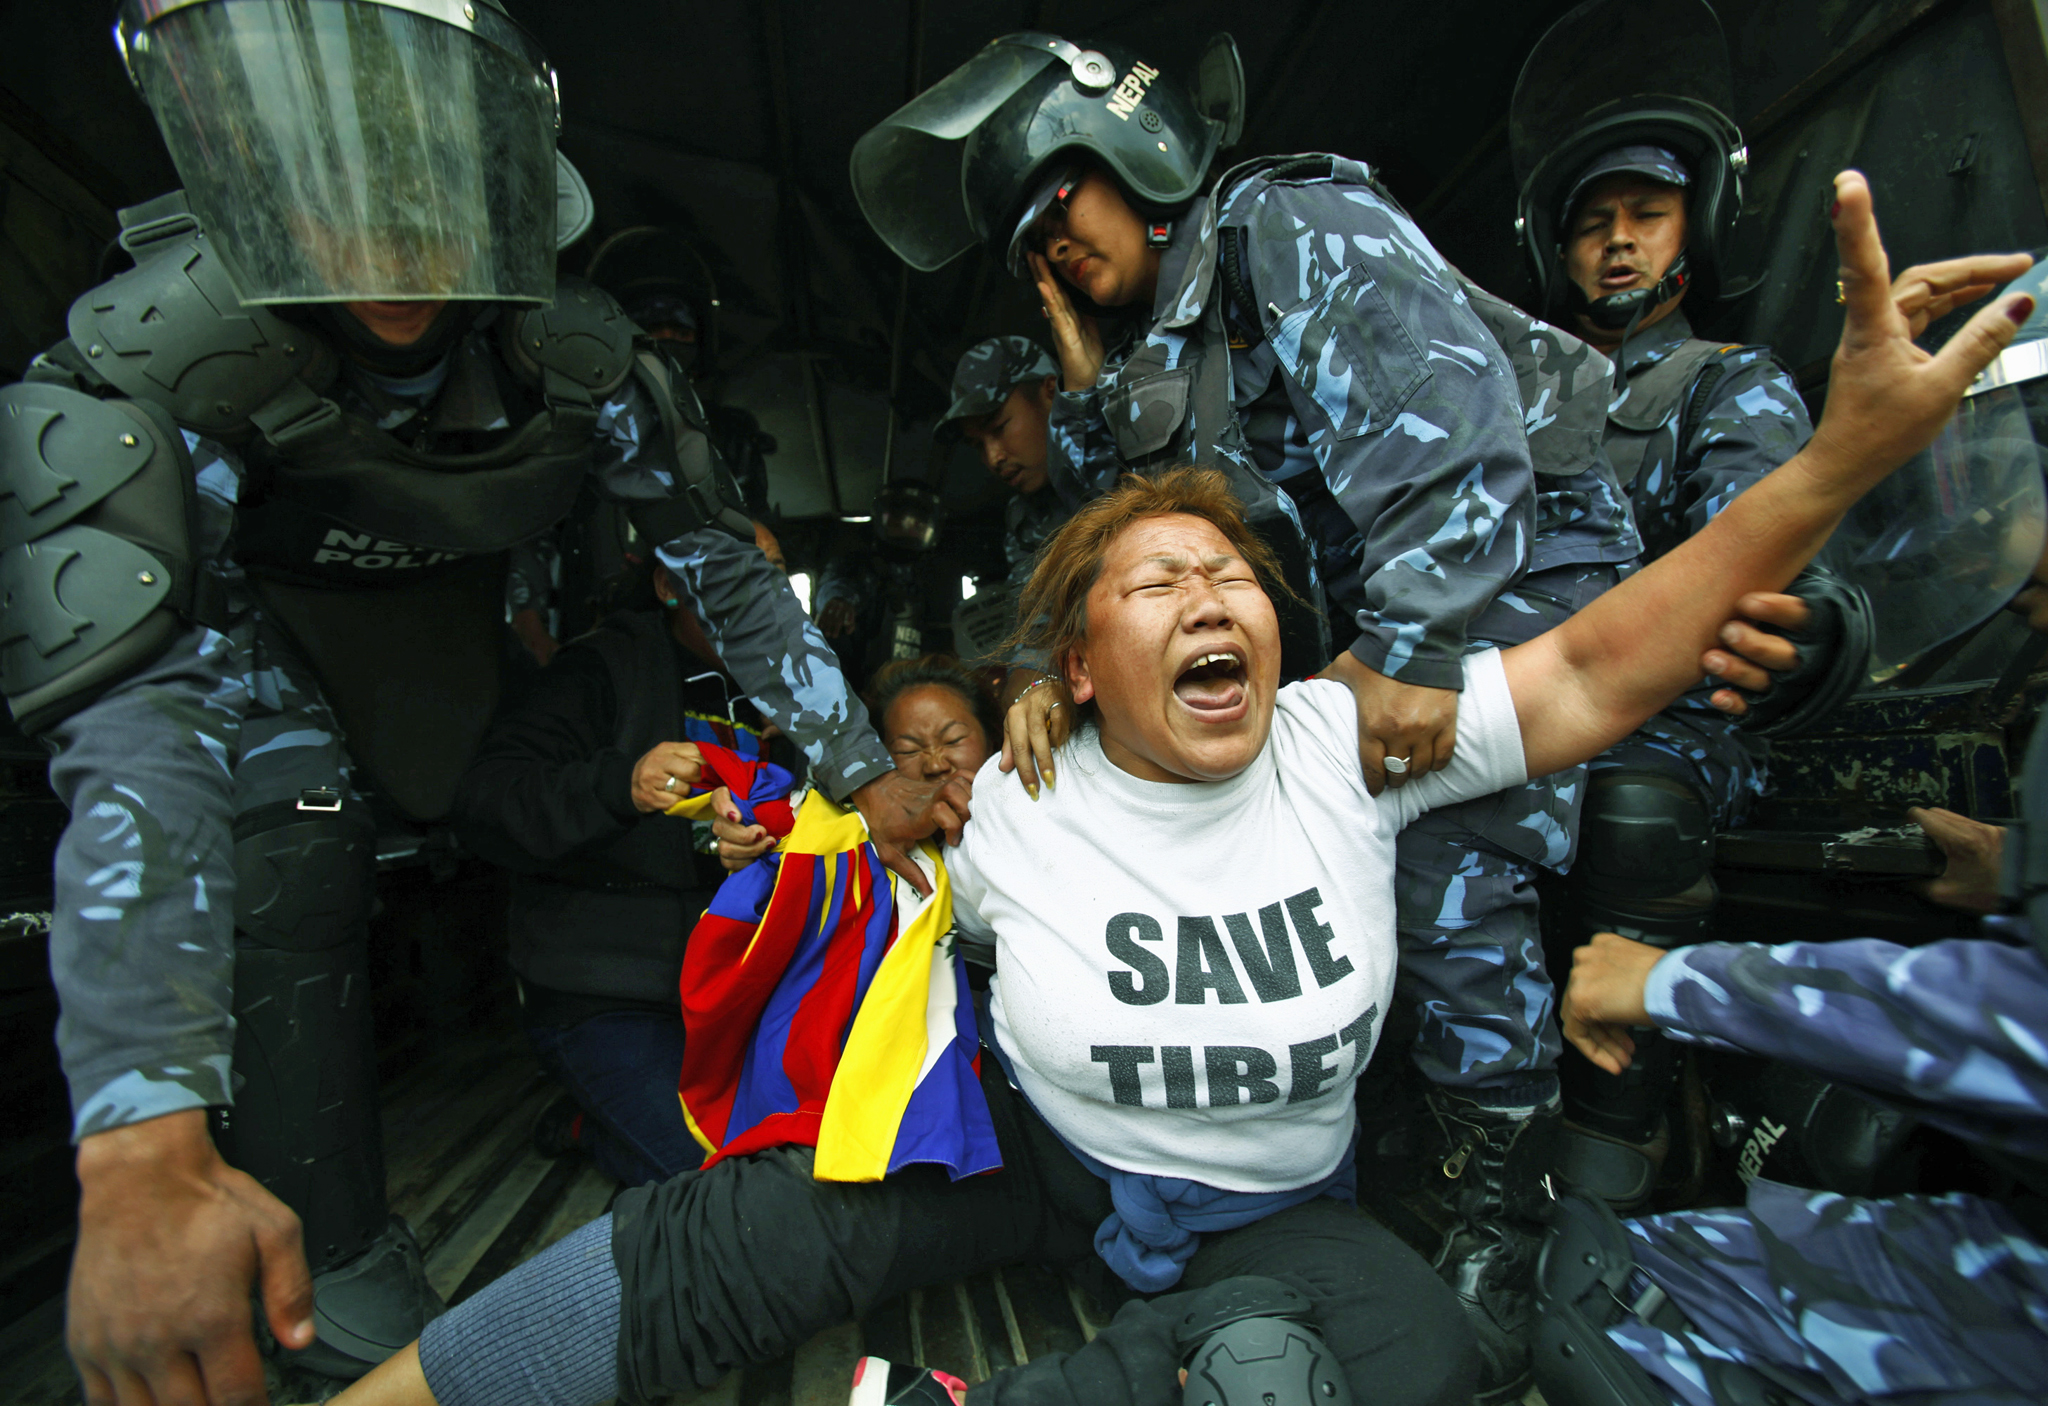 Nepalese policemen detain exiled Tibetans as they shout slogans during a protest outside the Chinese embassy visa office in Katmandu, Nepal, Monday, March 10, 2014. Police broke up a small Tibetan protest in Nepal's capital and detained the protesters on Monday's anniversary of a failed 1959 uprising against Chinese rule in Tibet. Tibetan refugees in Nepal regularly demonstrate against Chinese rule over their homeland.